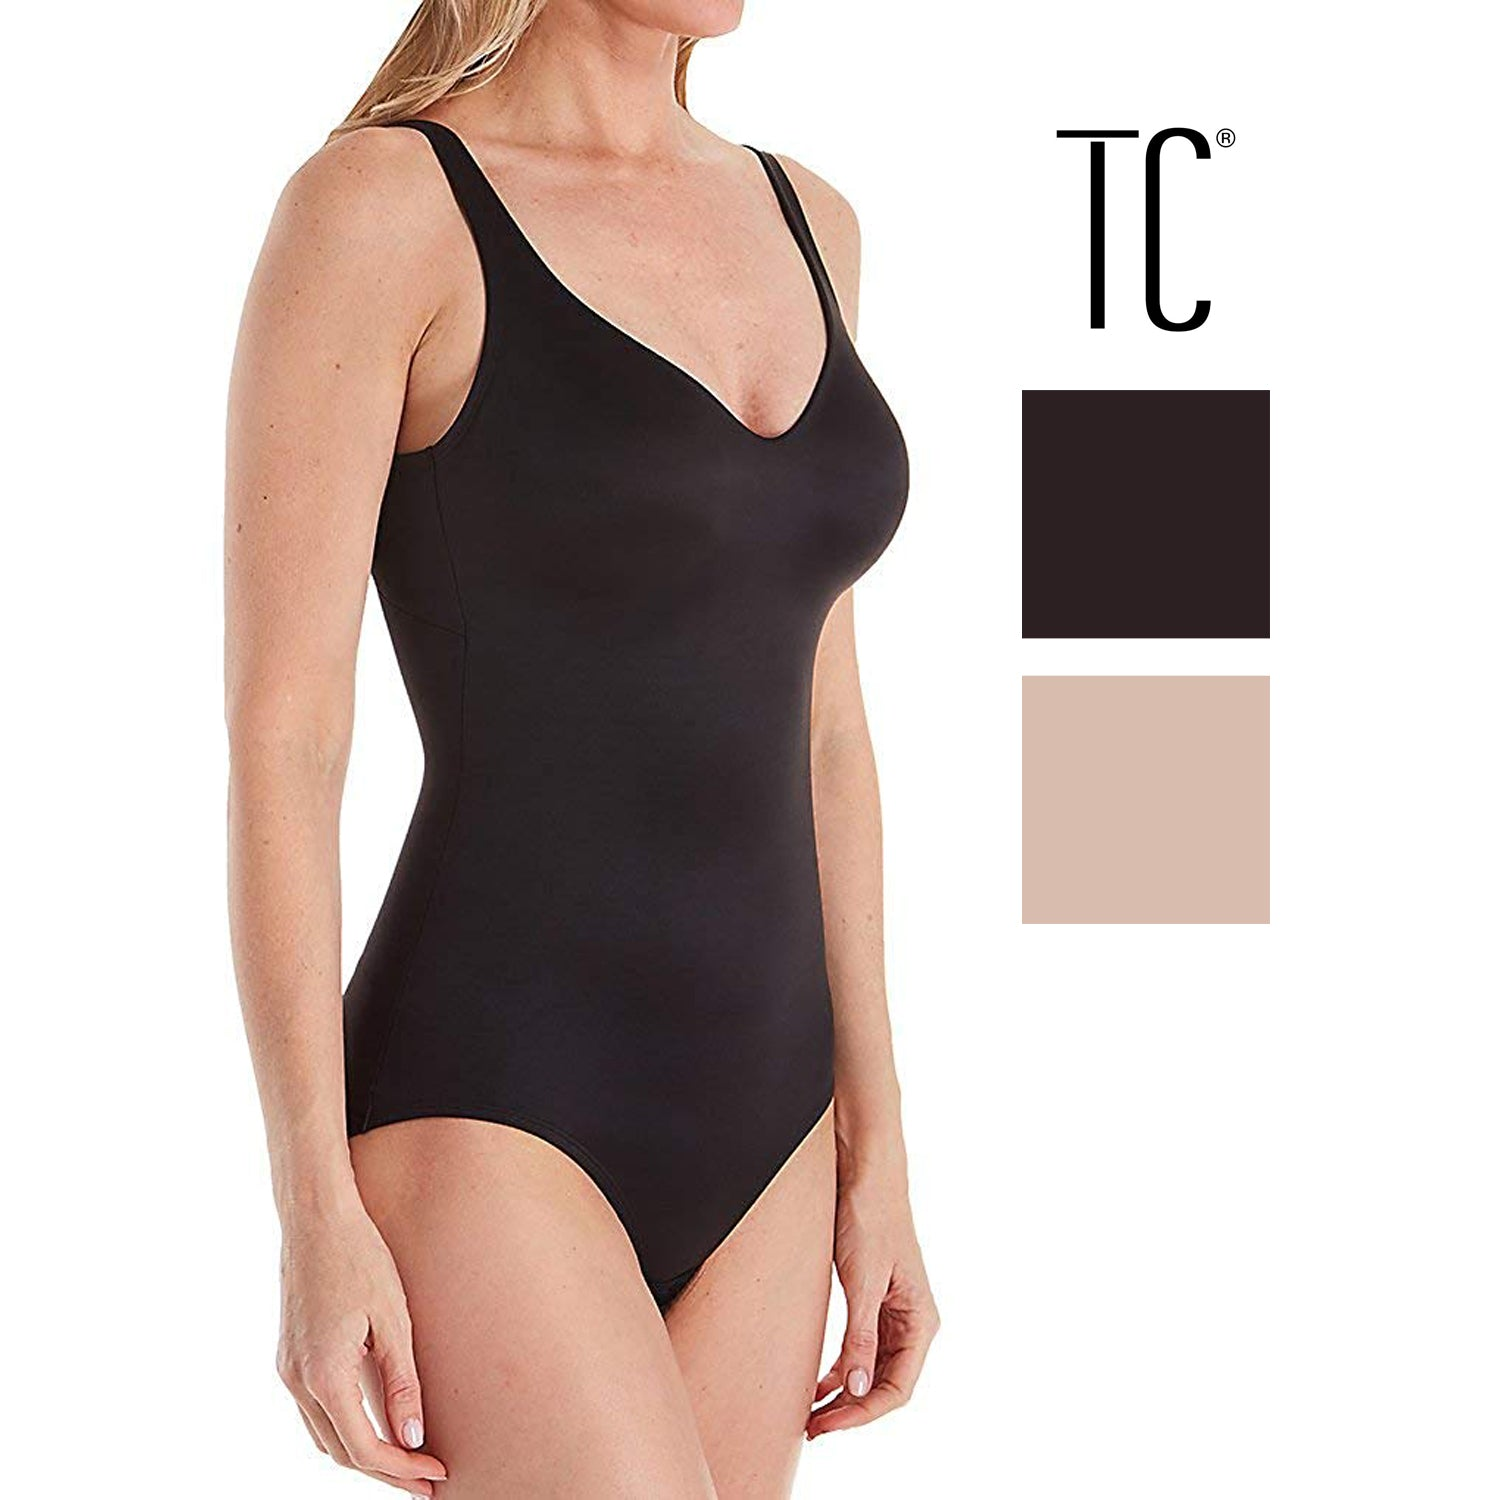 88c4eee1979 TC Fine Intimates Womens Wonderful U! Firm Control Body Briefer Bodysu –  Shop Munki